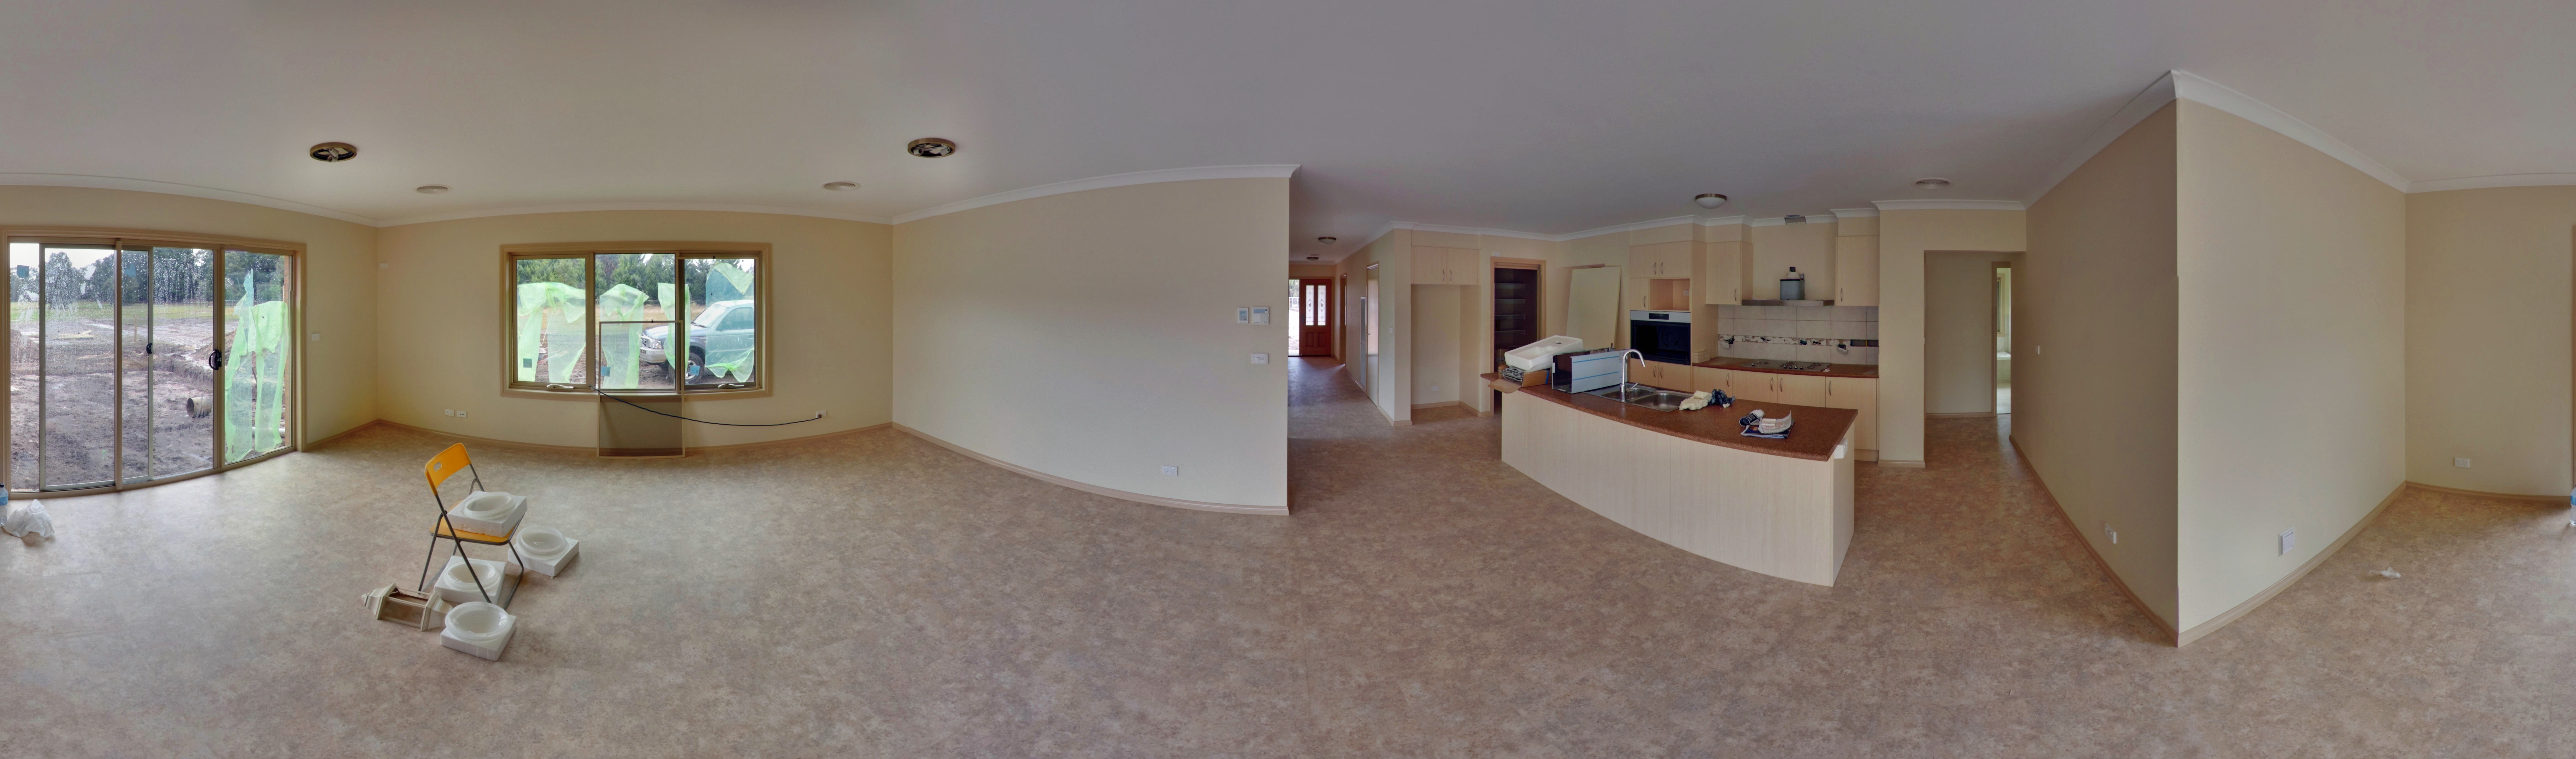 This should be living-room.jpeg.  Is it missing?